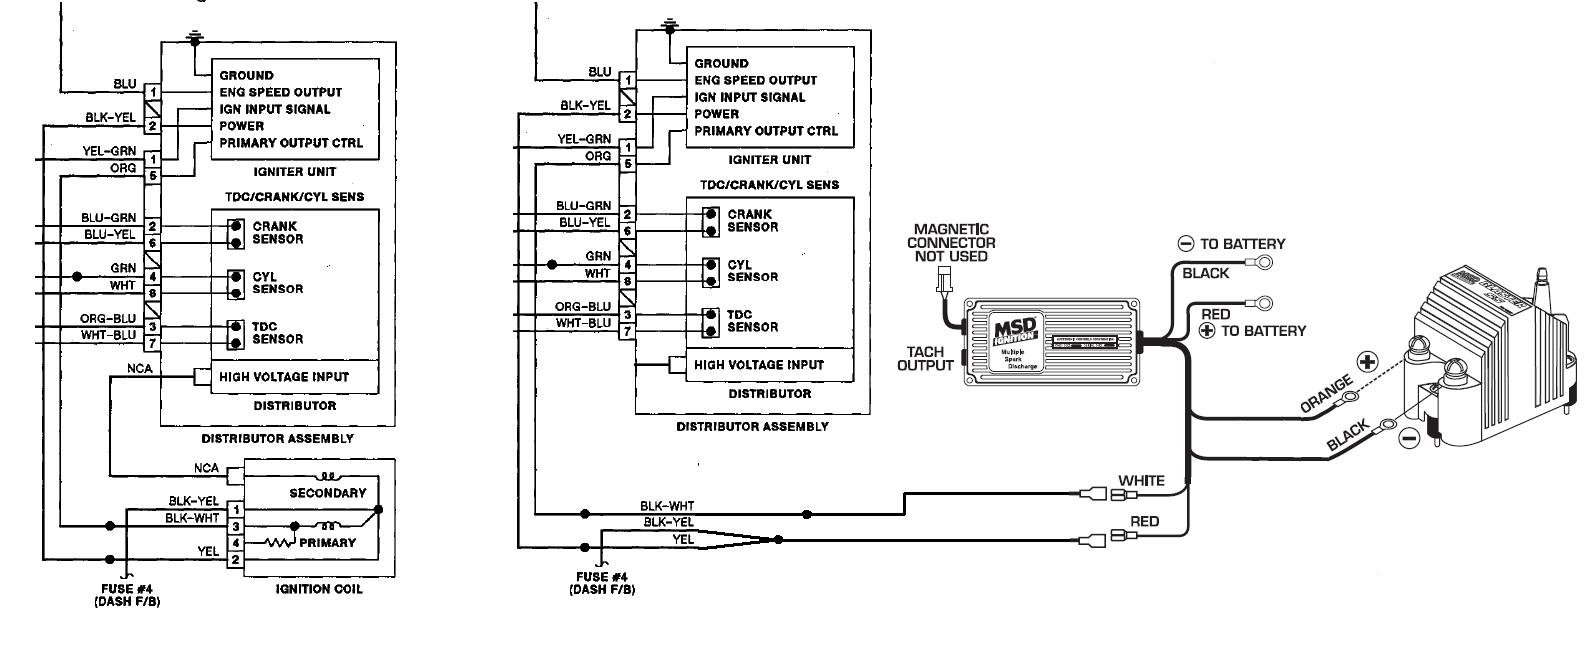 blog_diagrams_and_drawings_6_series_honda_1993_accord_6_ss_coil_2 msd 7al 2 wiring diagram chevy ignition msd 7al2 for sale \u2022 45 63 msd 7al-2 wiring diagram 7220 at edmiracle.co